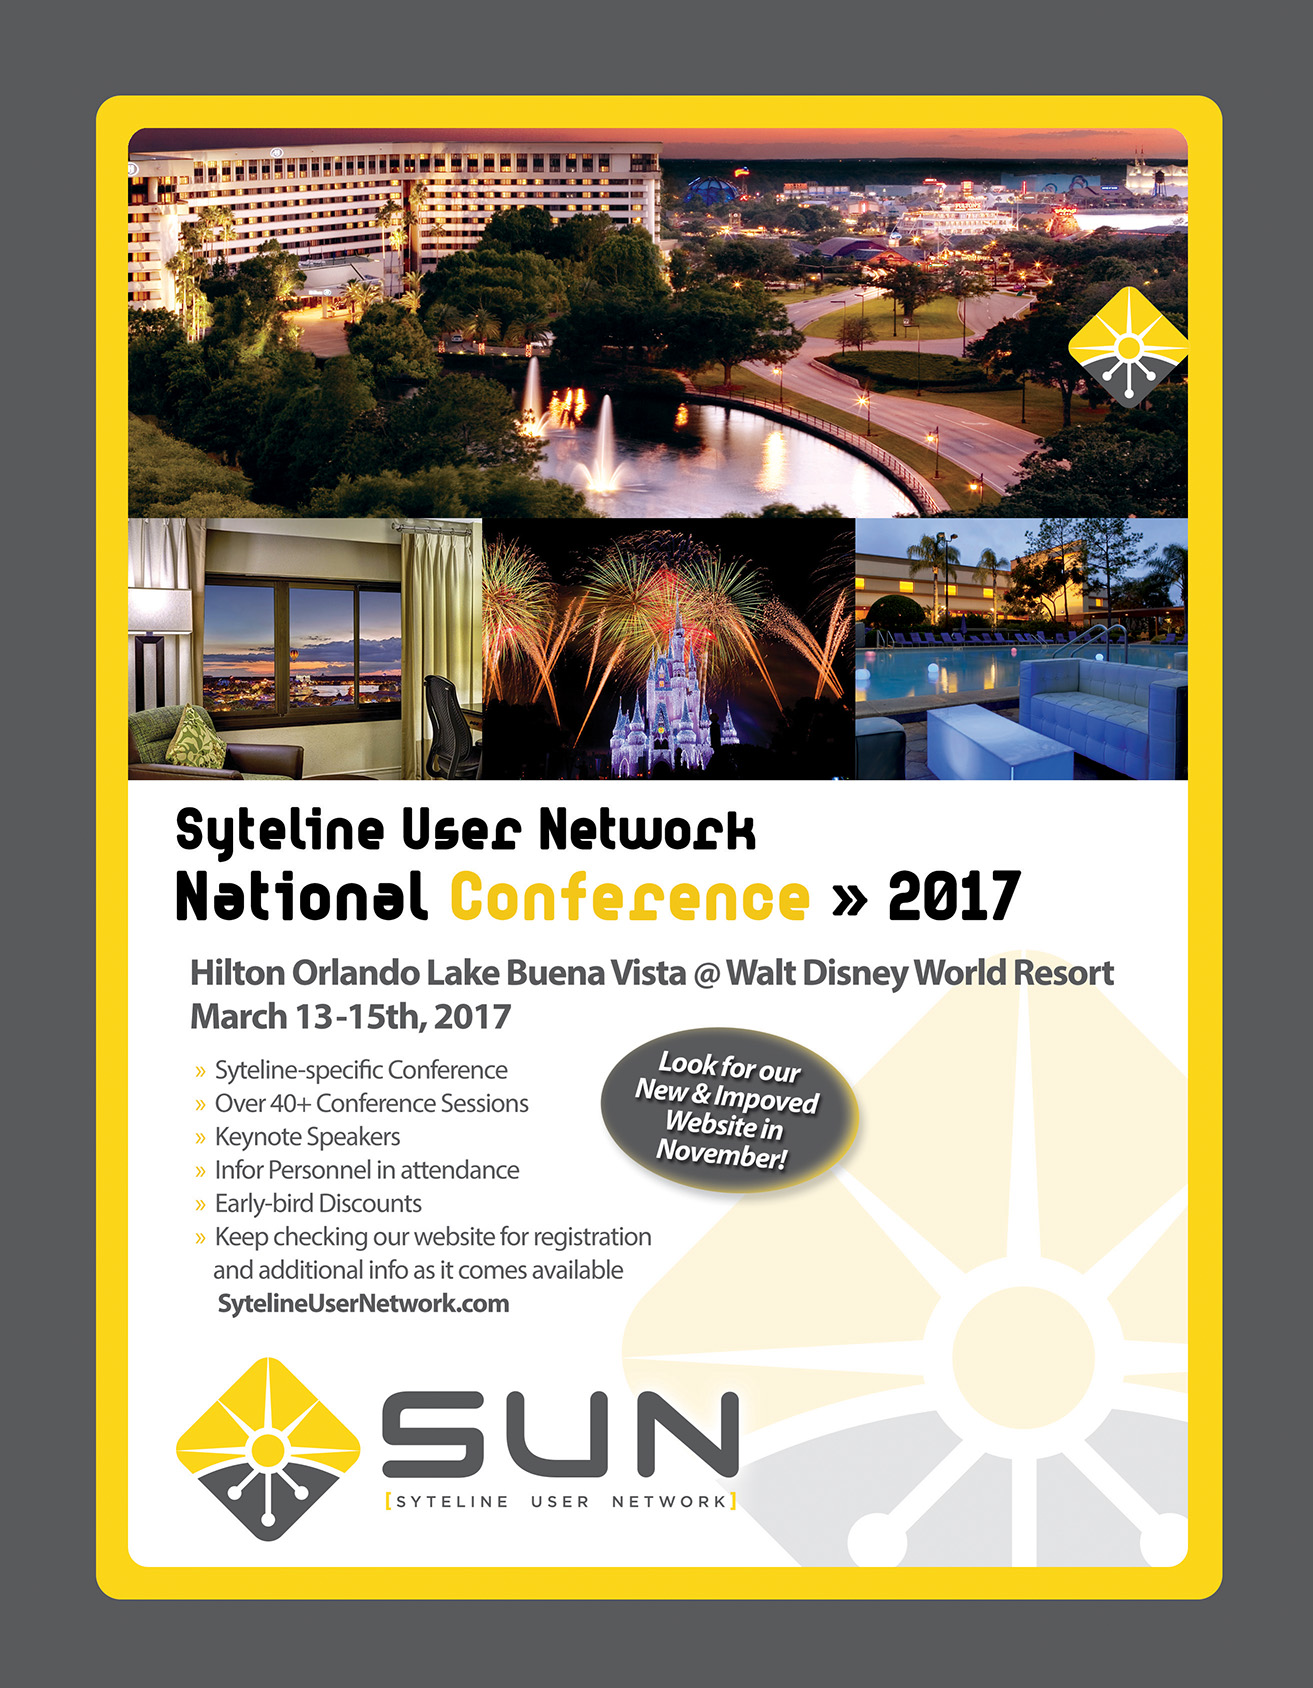 SUN Conference 2017 Location Announced | Syteline User Network